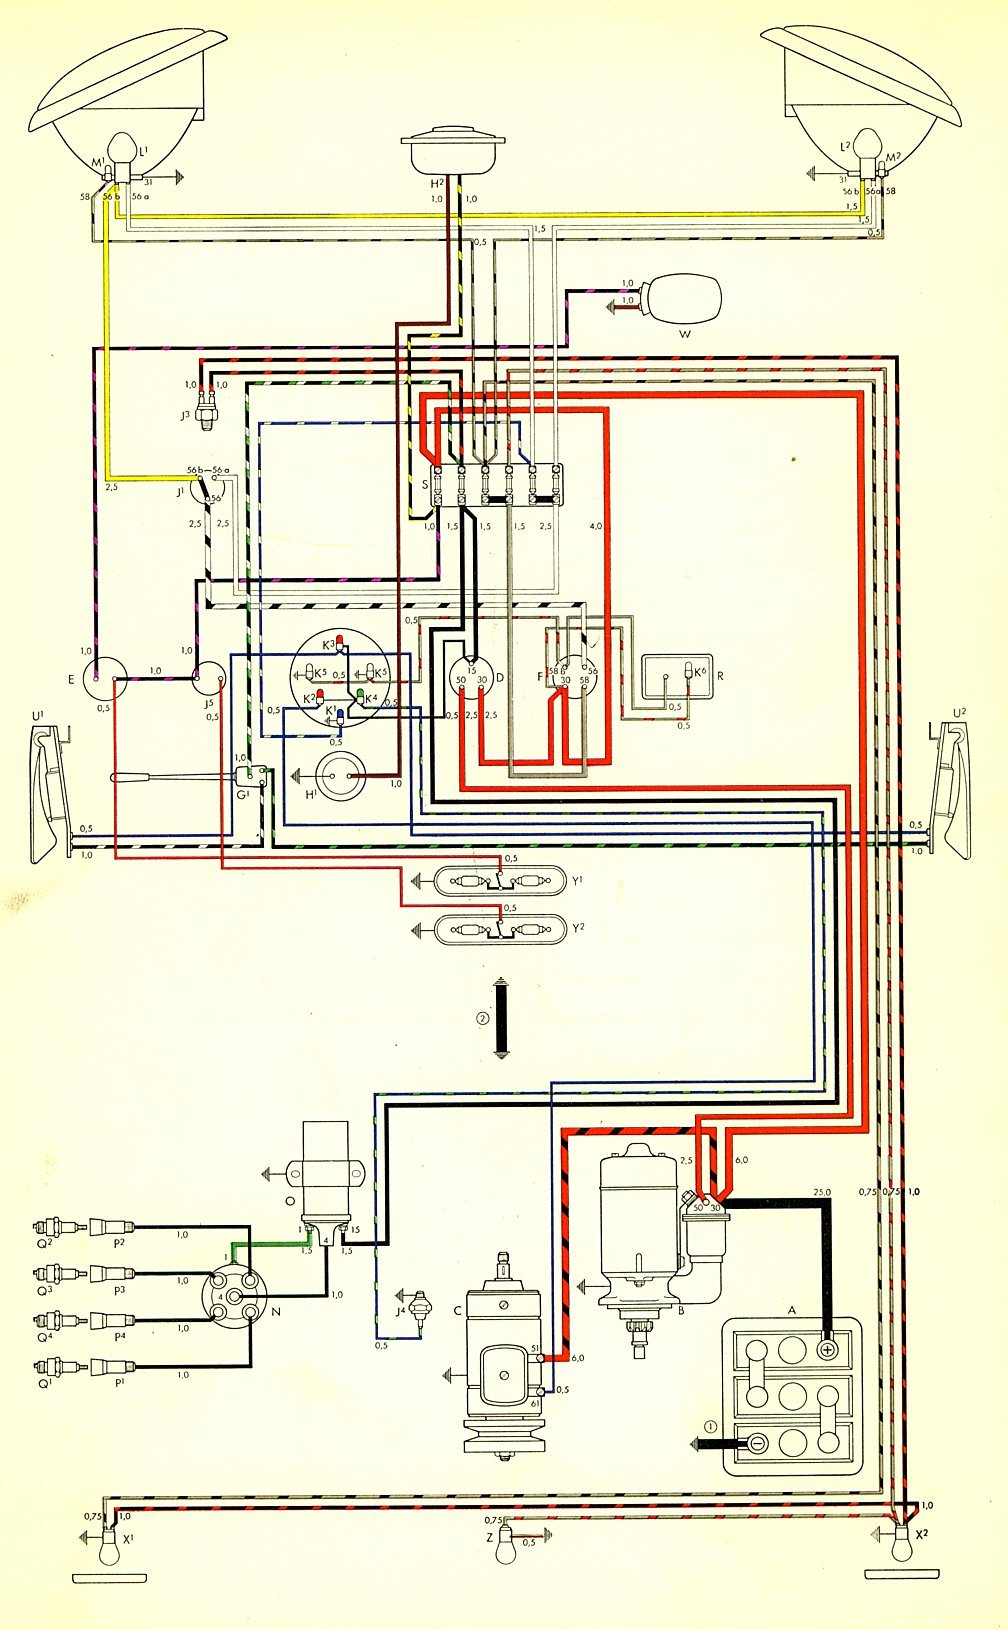 bus_59 wiring diagram for 1971 vw bus readingrat net 1978 vw bus fuse box diagram at couponss.co